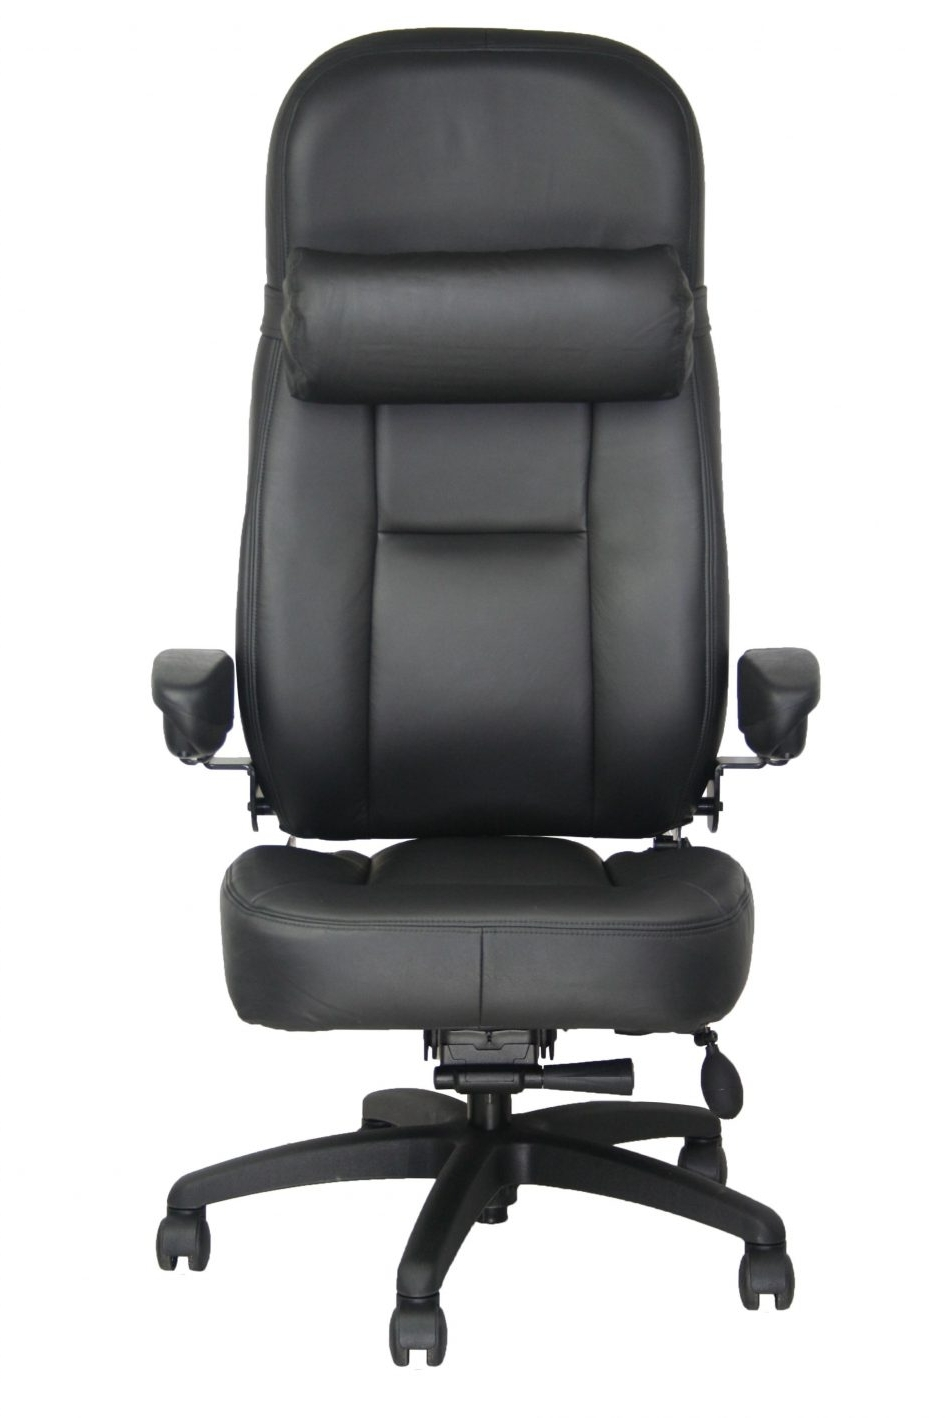 Executive Office Chairs Without Wheels In Recent Large Executive Office Desk Office Chair Without Wheels Folding (View 18 of 20)